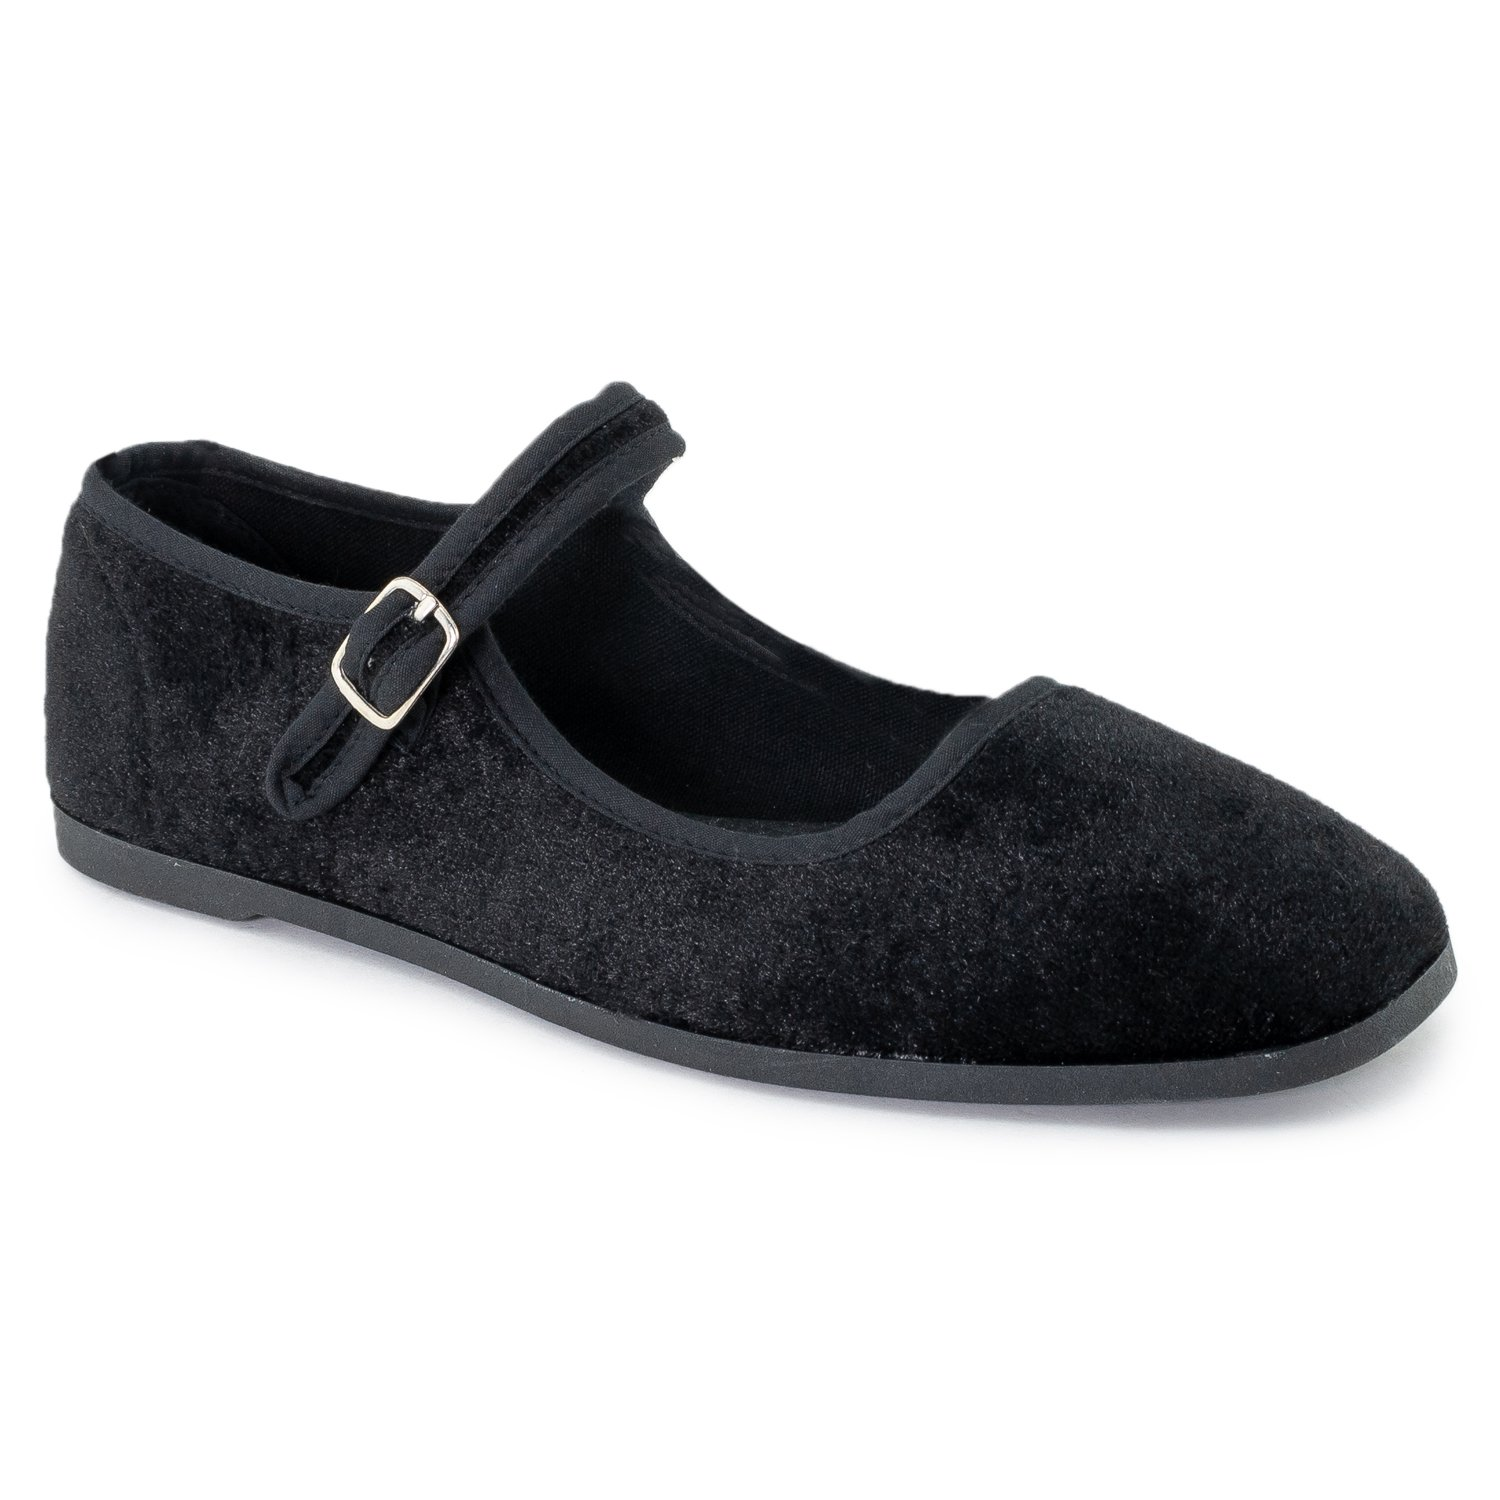 RF ROOM OF FASHION Mary Jane Ballet Flats - Stylish and Comfortable Ballerina Style Flat Shoes - Women's Mary Janes with a Low Heel and Bow Back Straps - Dress Up Down - Slip-on Black Velvet (6)